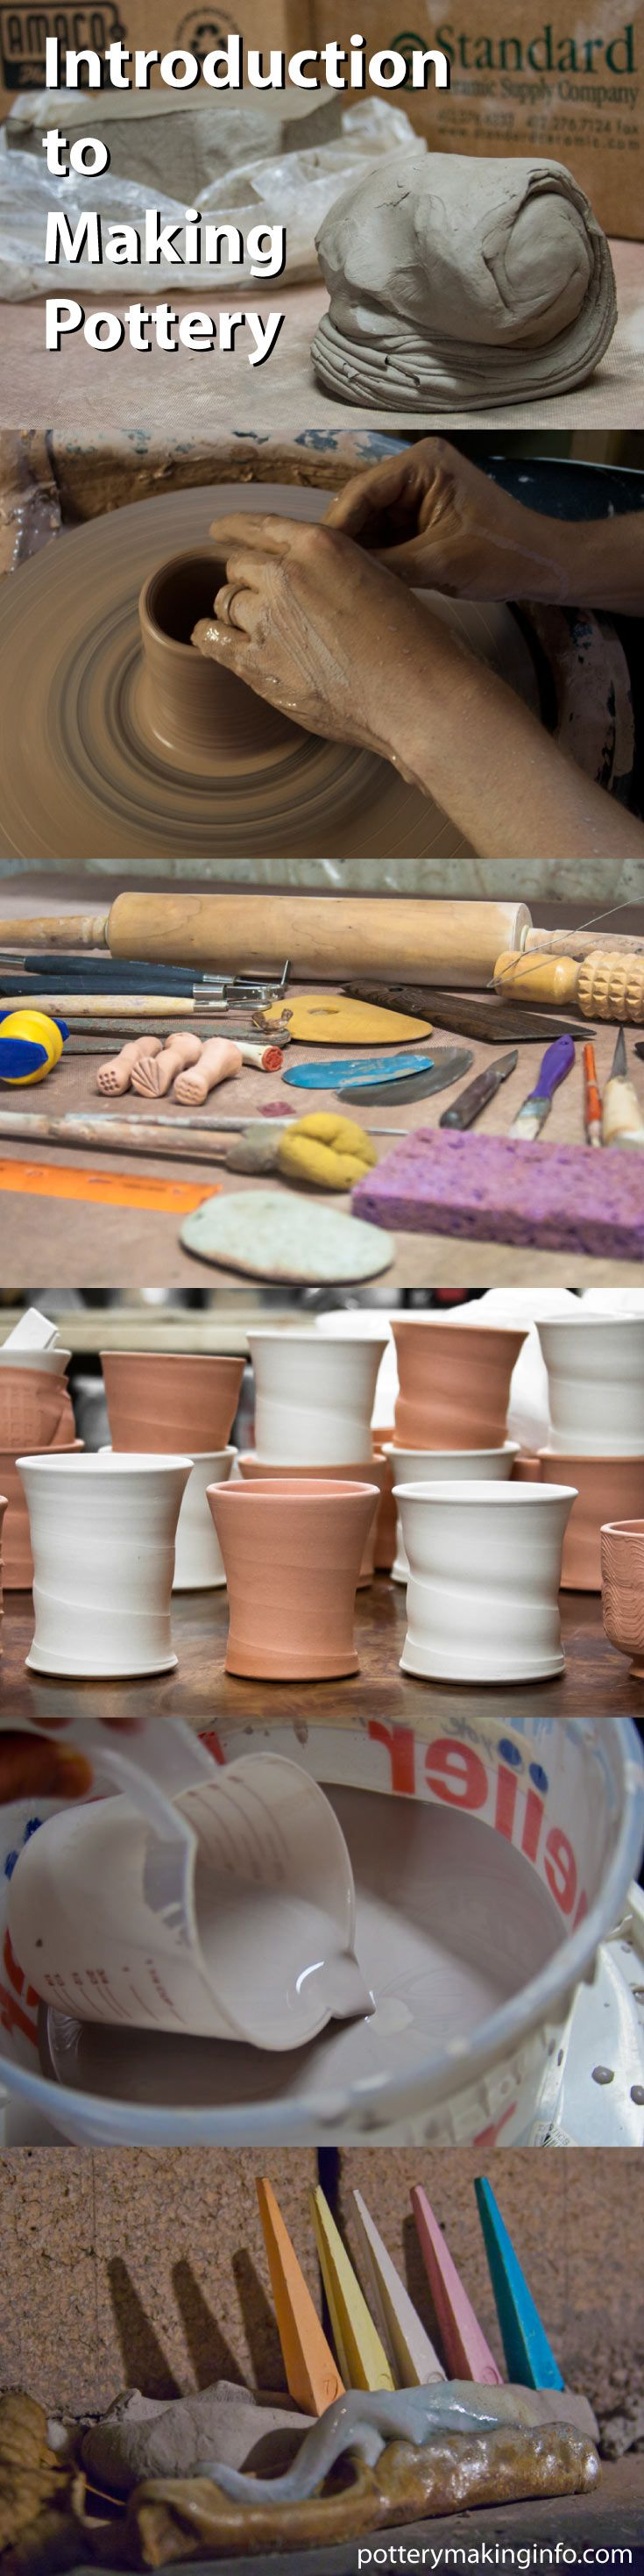 An introduction to making pottery. http://www.potterymakinginfo.com/pottery-making/